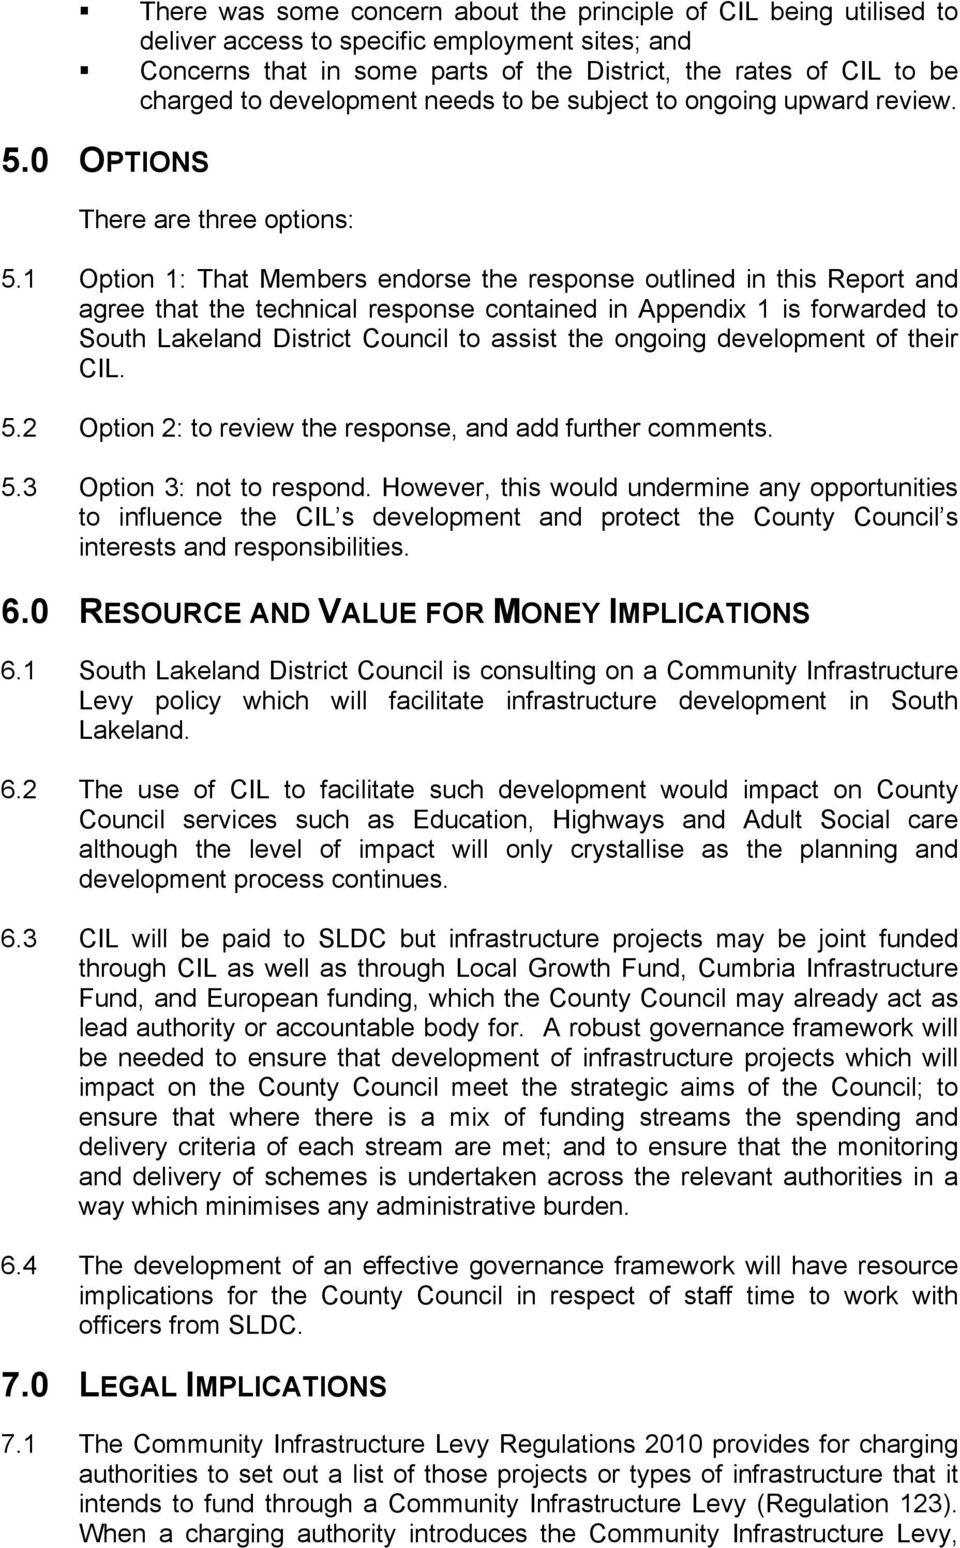 1 Option 1: That Members endorse the response outlined in this Report and agree that the technical response contained in Appendix 1 is forwarded to South Lakeland District Council to assist the